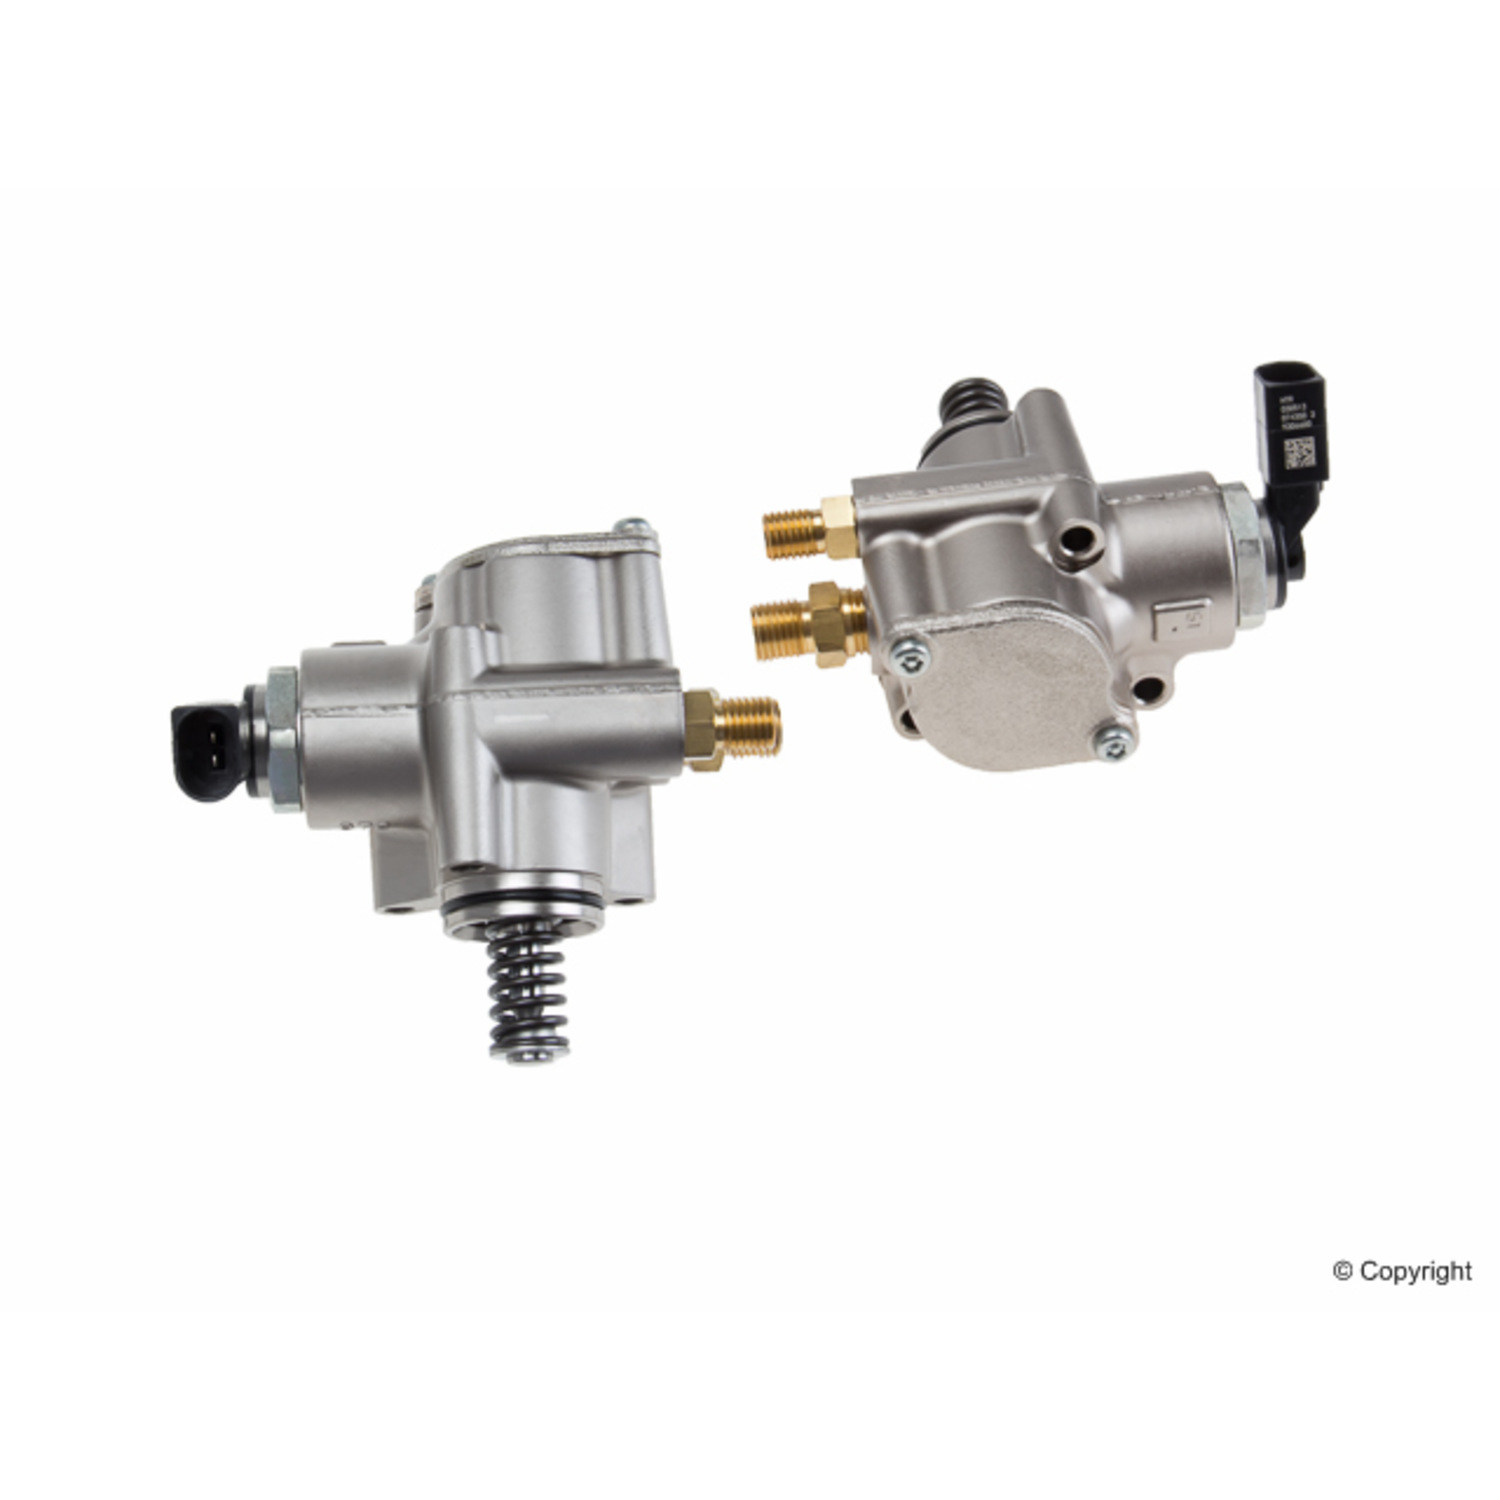 Volkswagen Direct Injection High Pressure Fuel Pump HPP0006